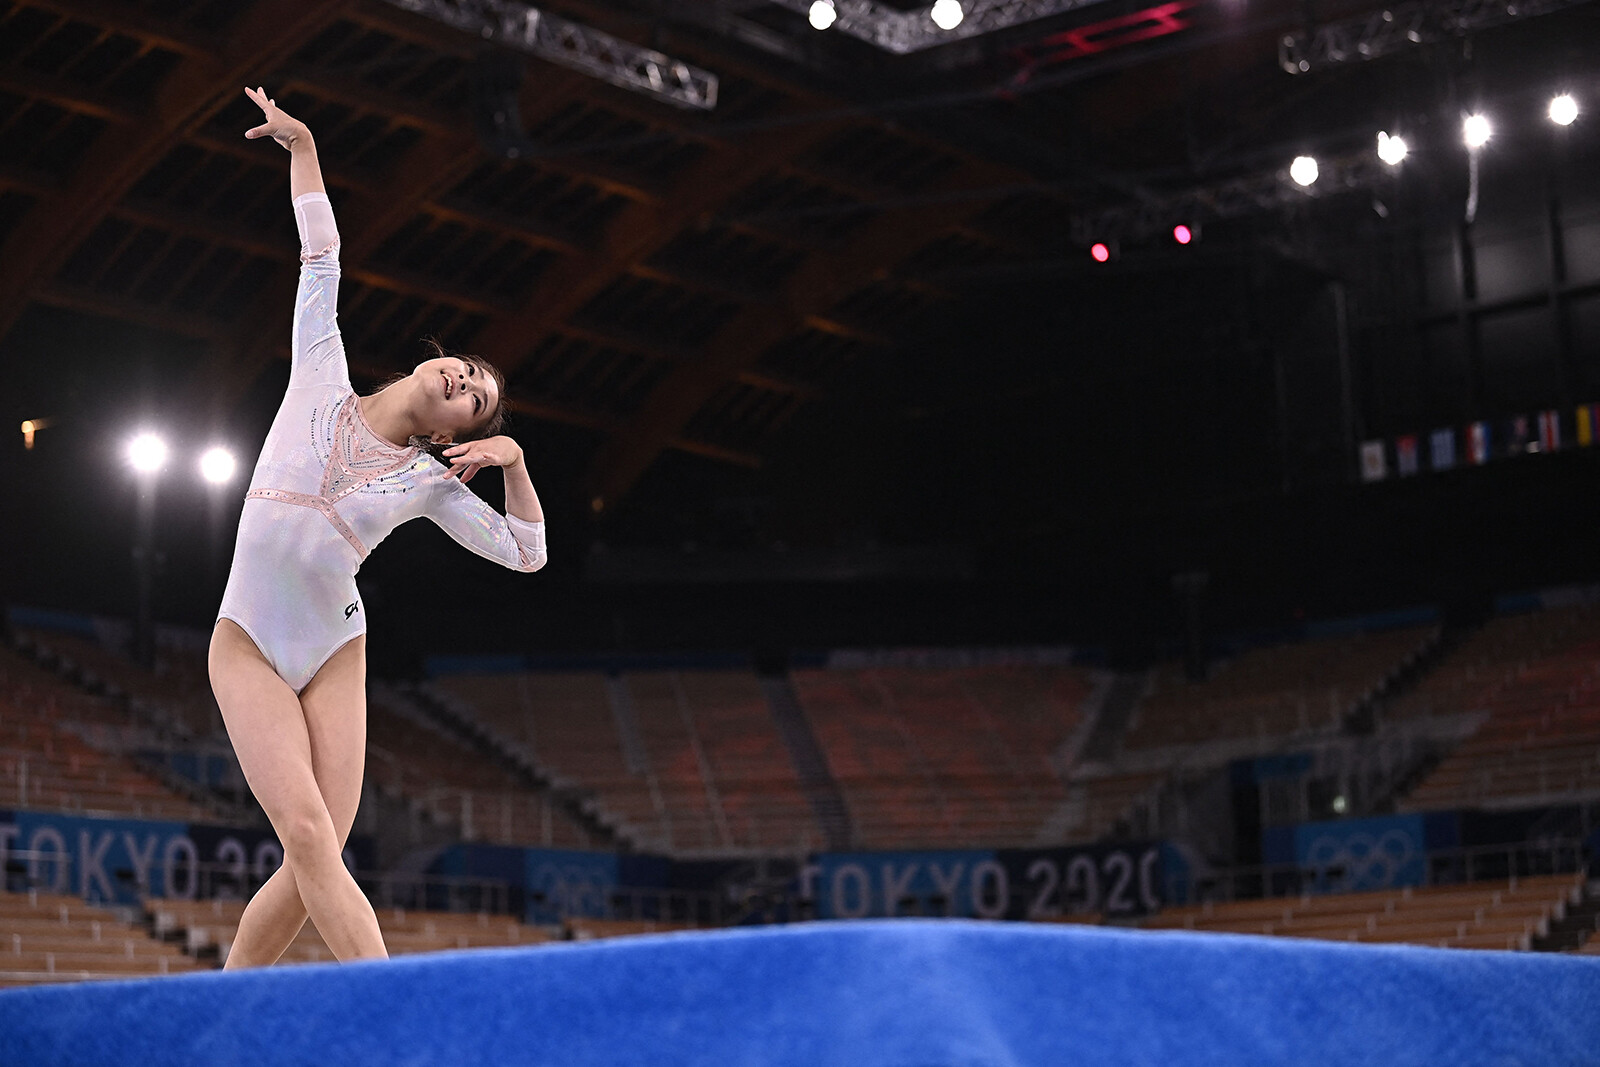 Why women gymnasts compete to music in their floor routines but men don't